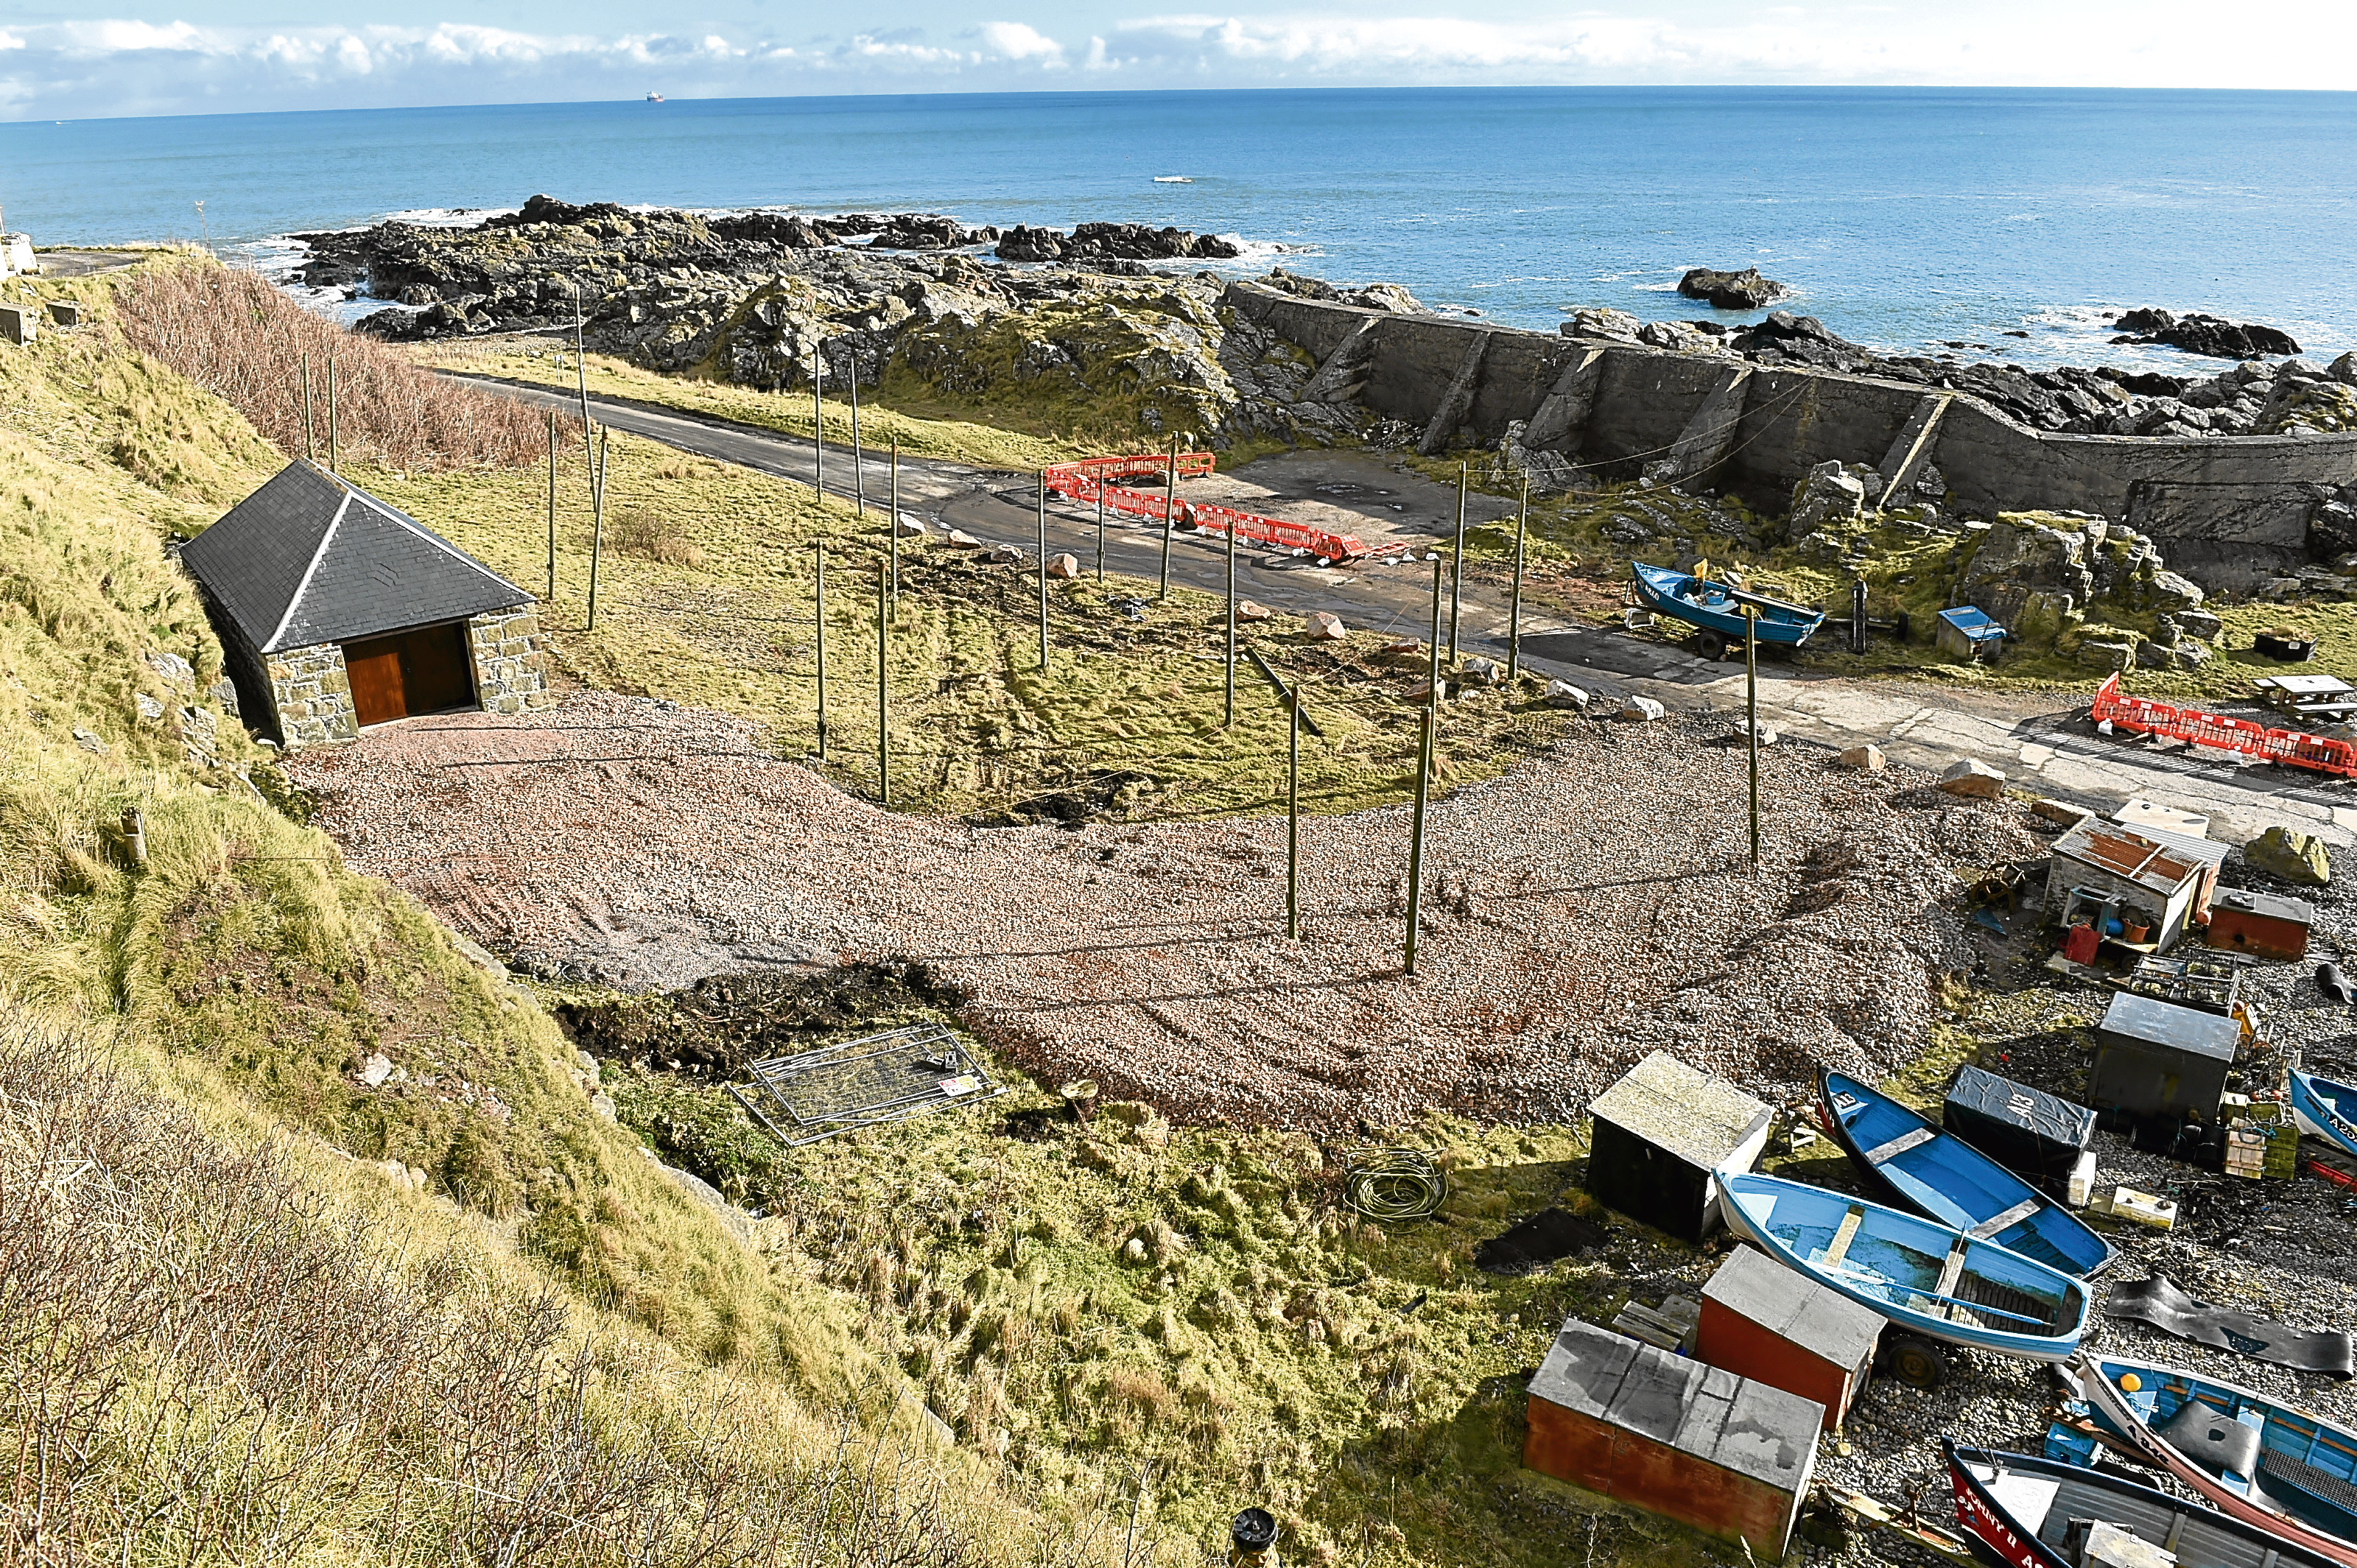 Vehicular access to Cove Harbour is now to be banned.